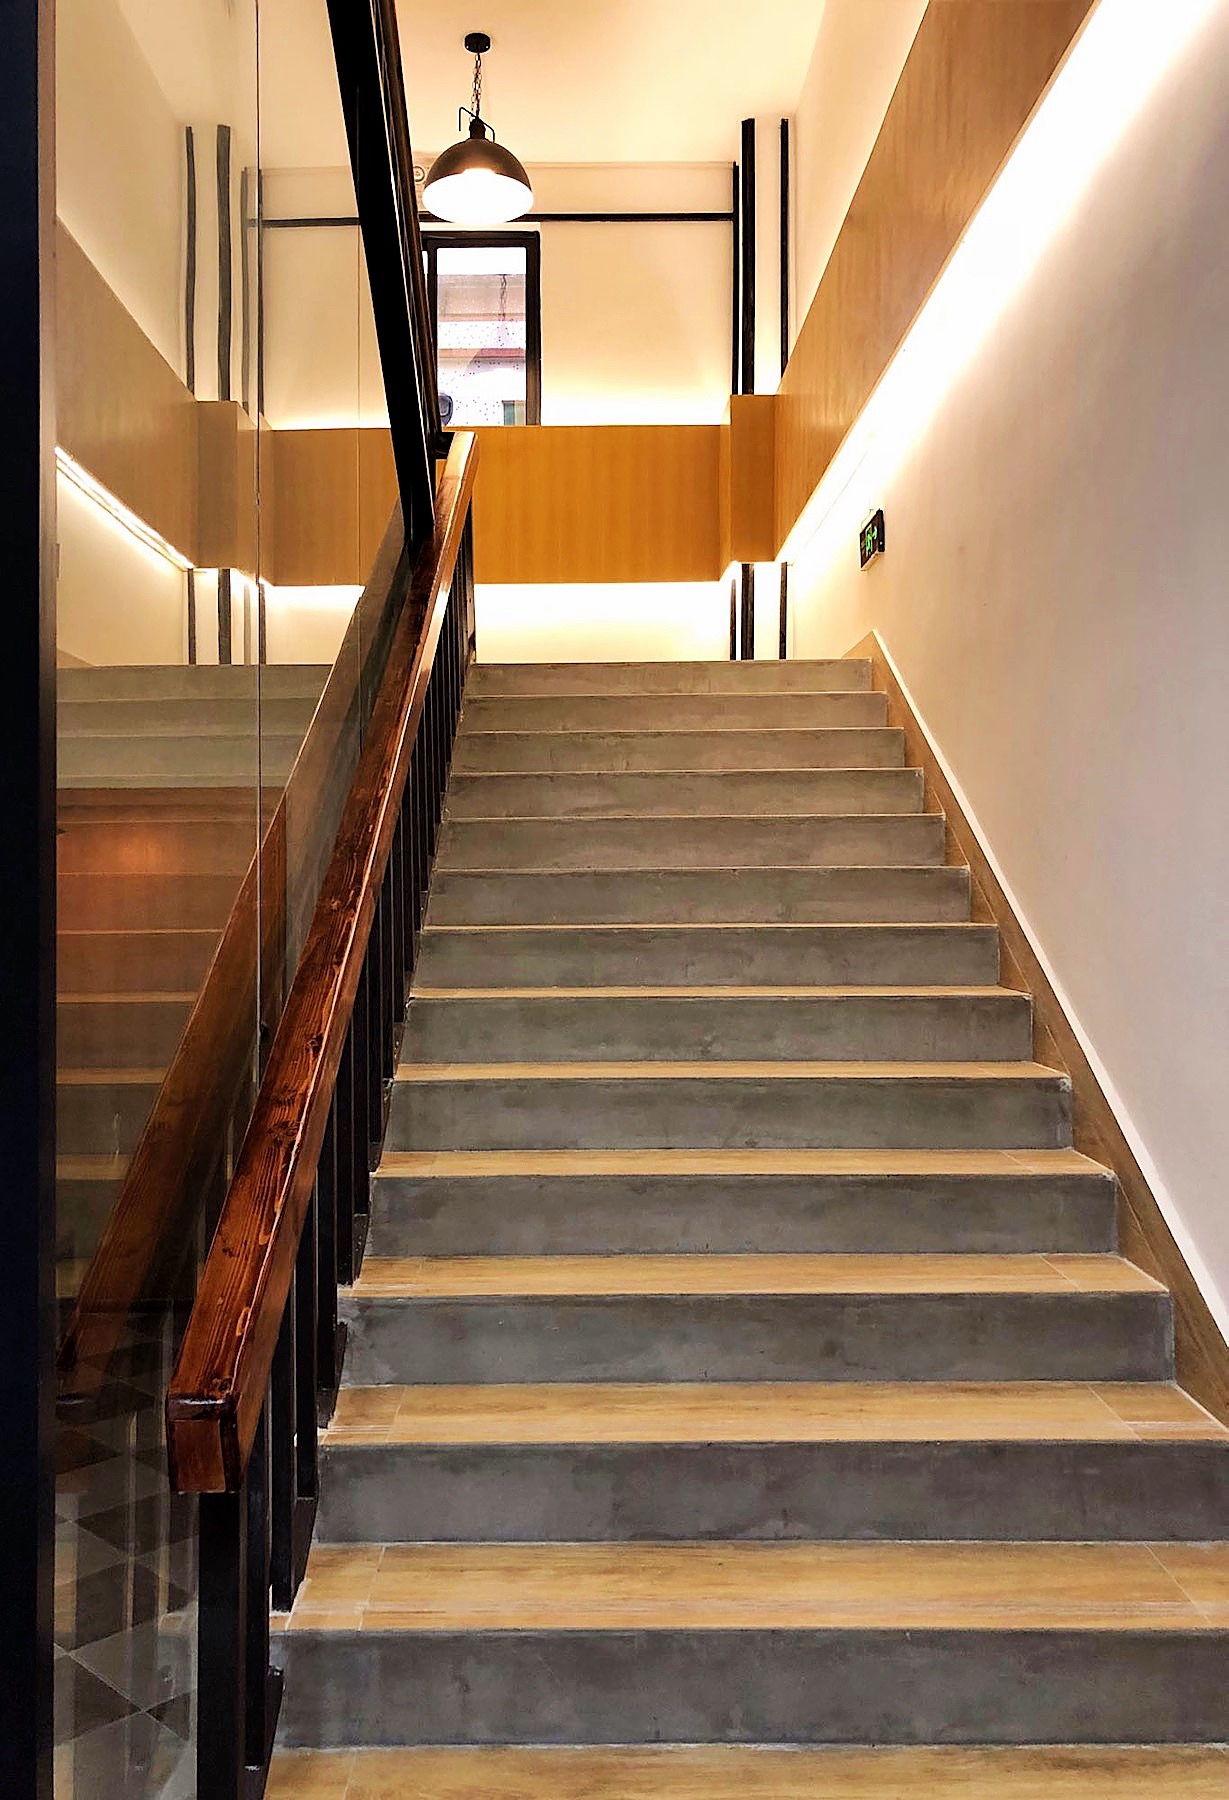 Grandway Office Renovation 2018 Main Staircase 001